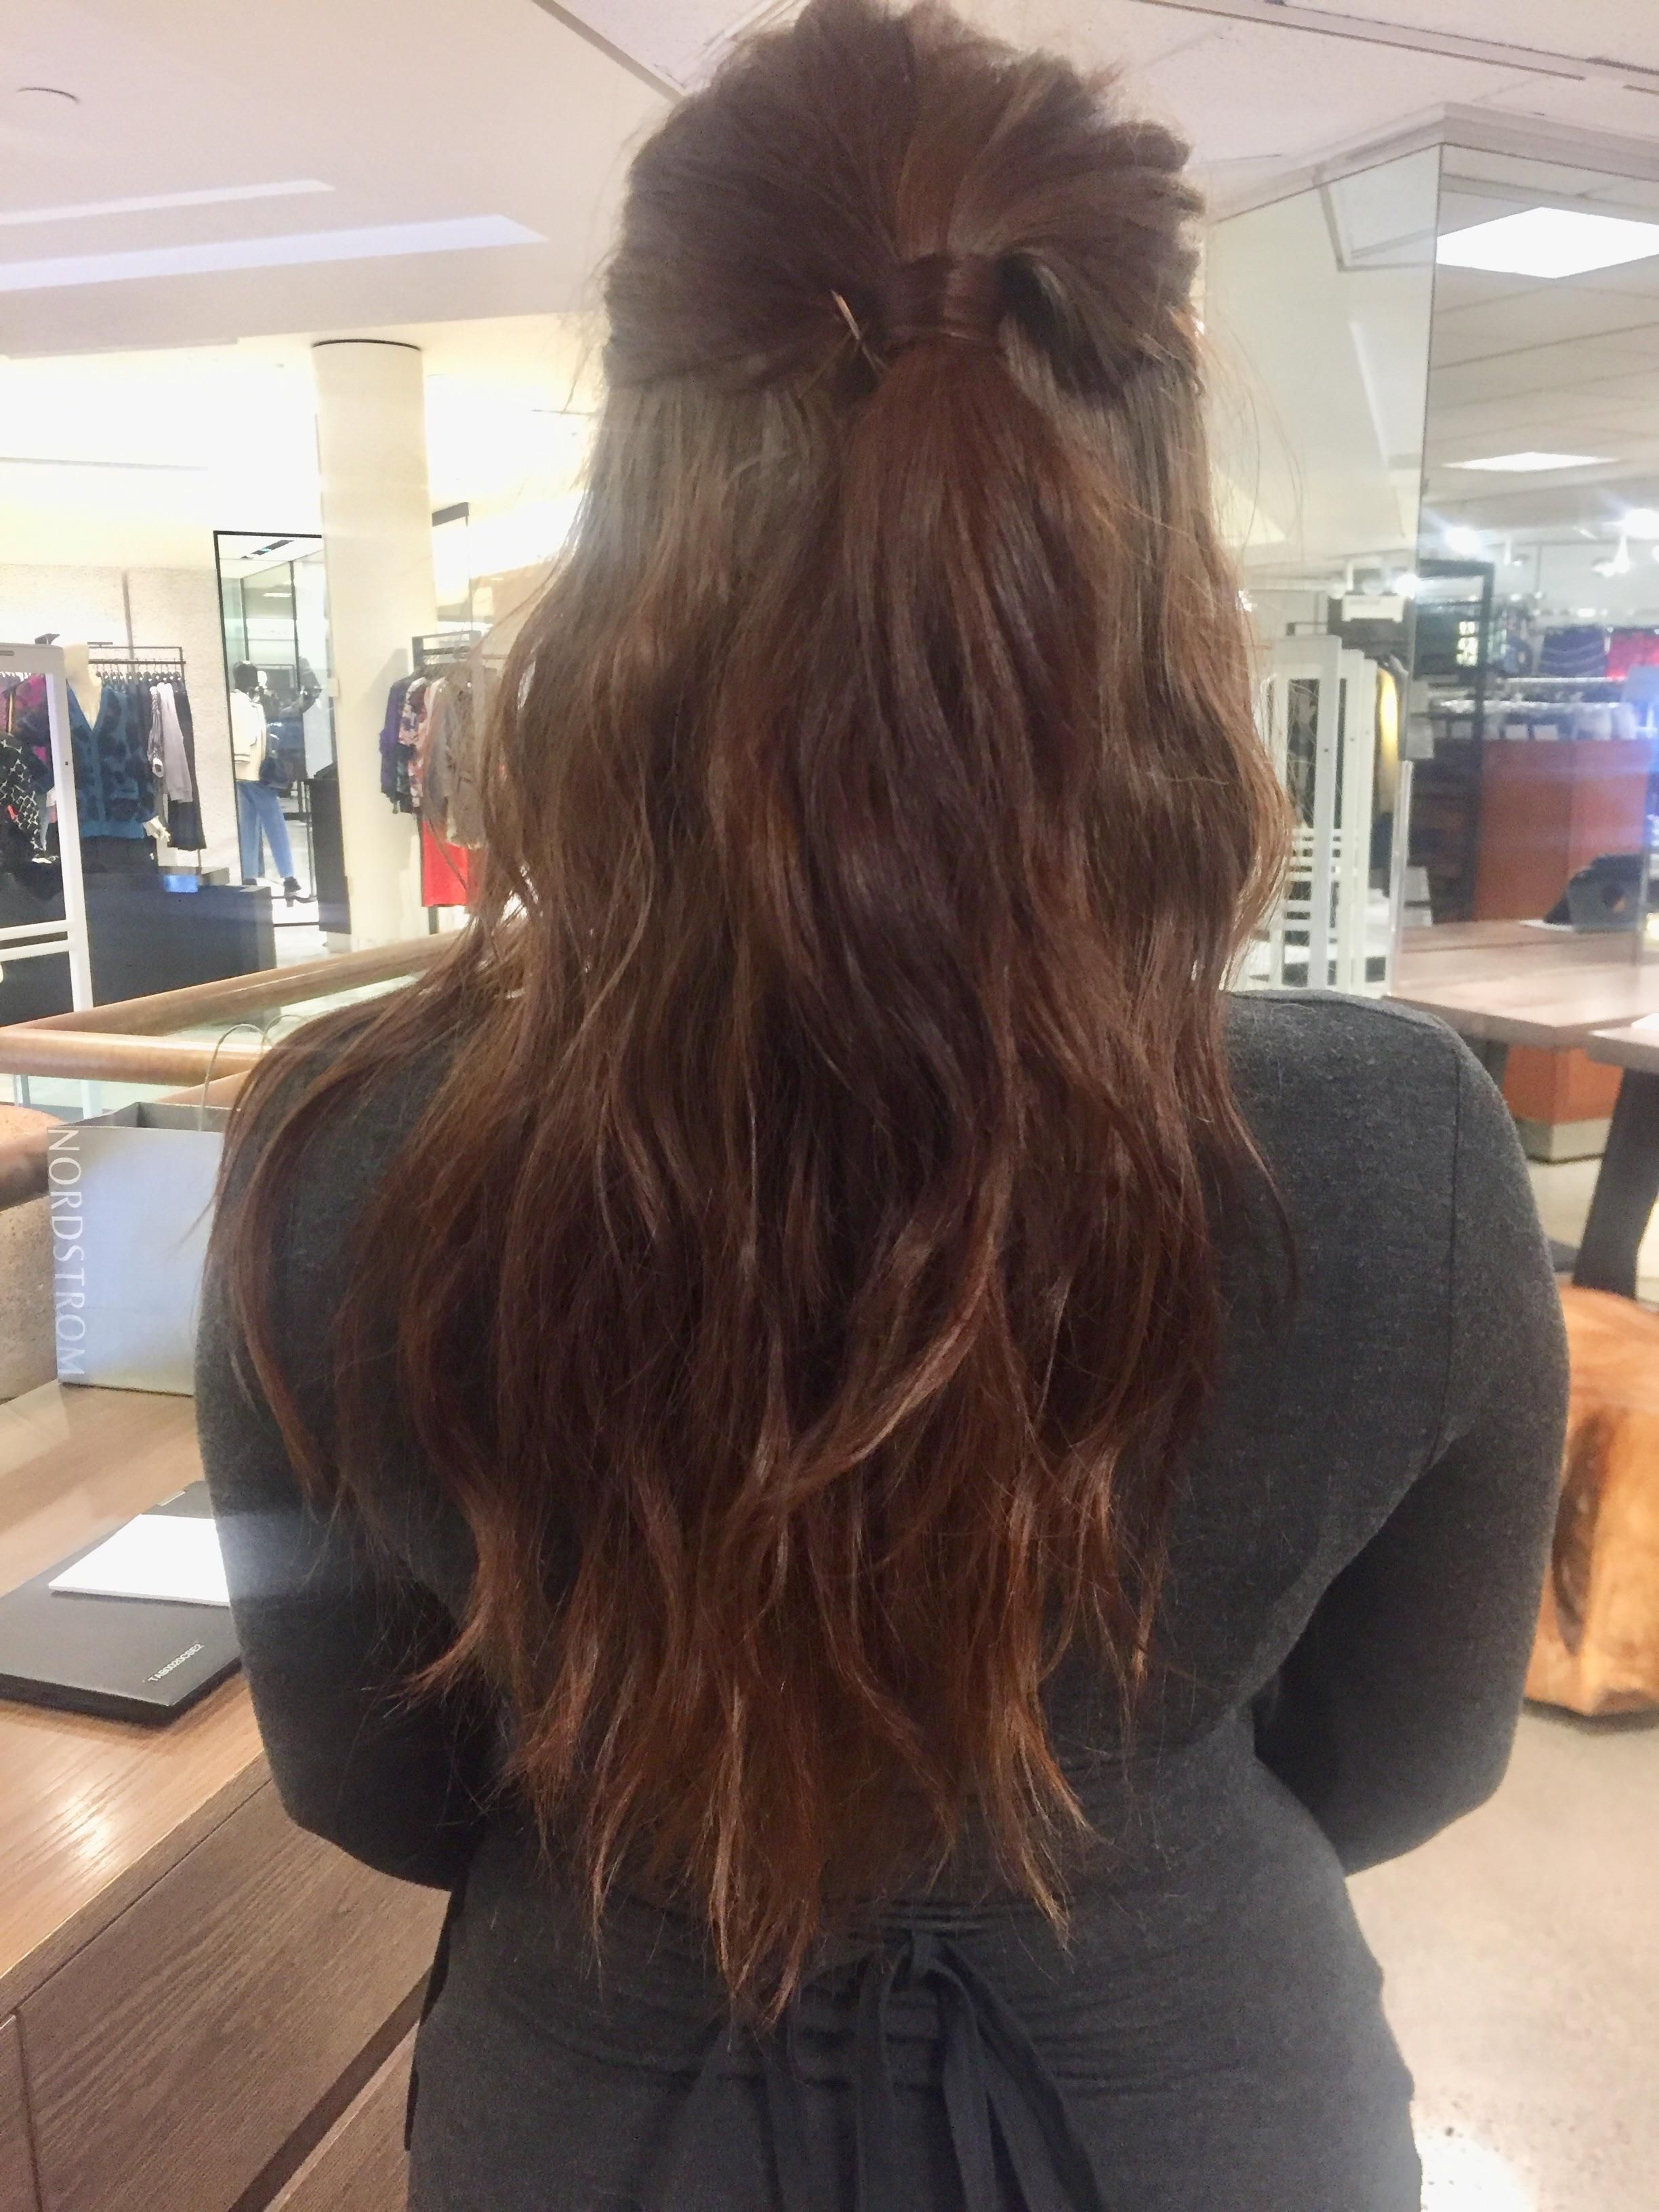 Reddit recently told me that sometimes puffy hair is actually wavy have thats being treated like ...